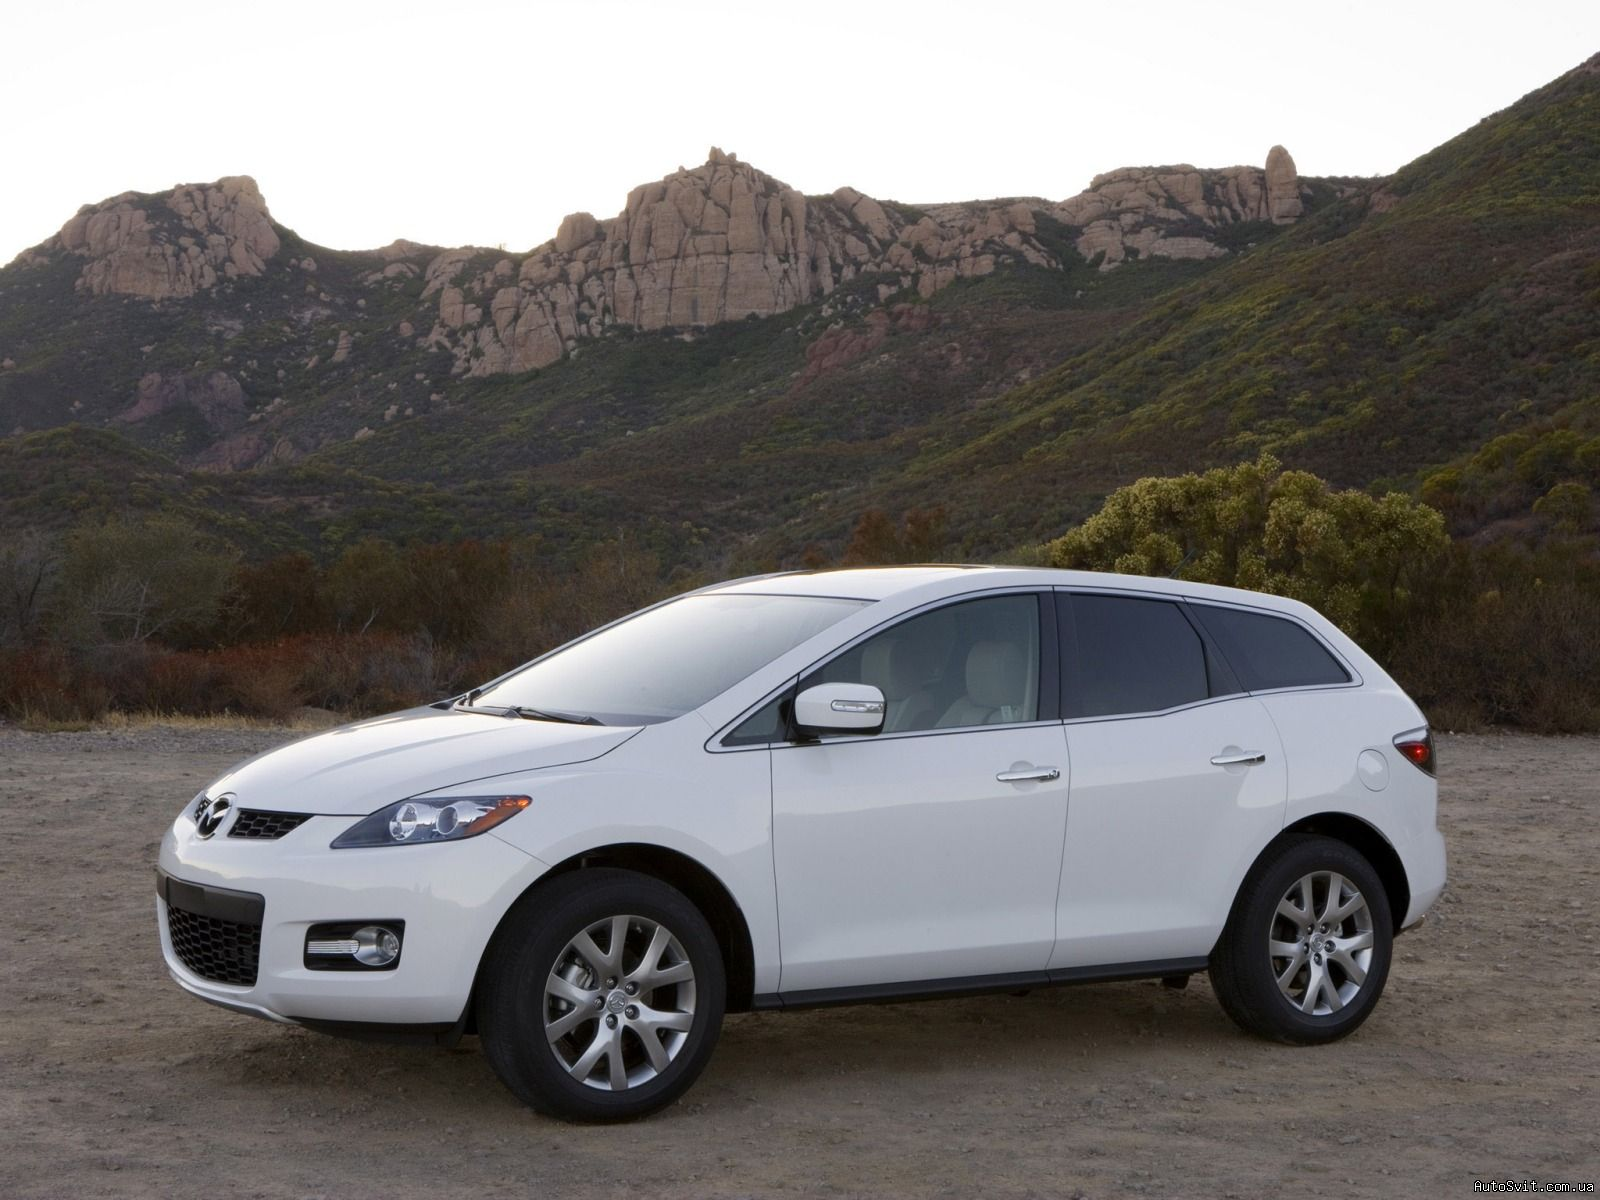 Mazda Cx 7 Pictures Information And Specs 2008 G35x Car Audio Wiring Photo Gallery